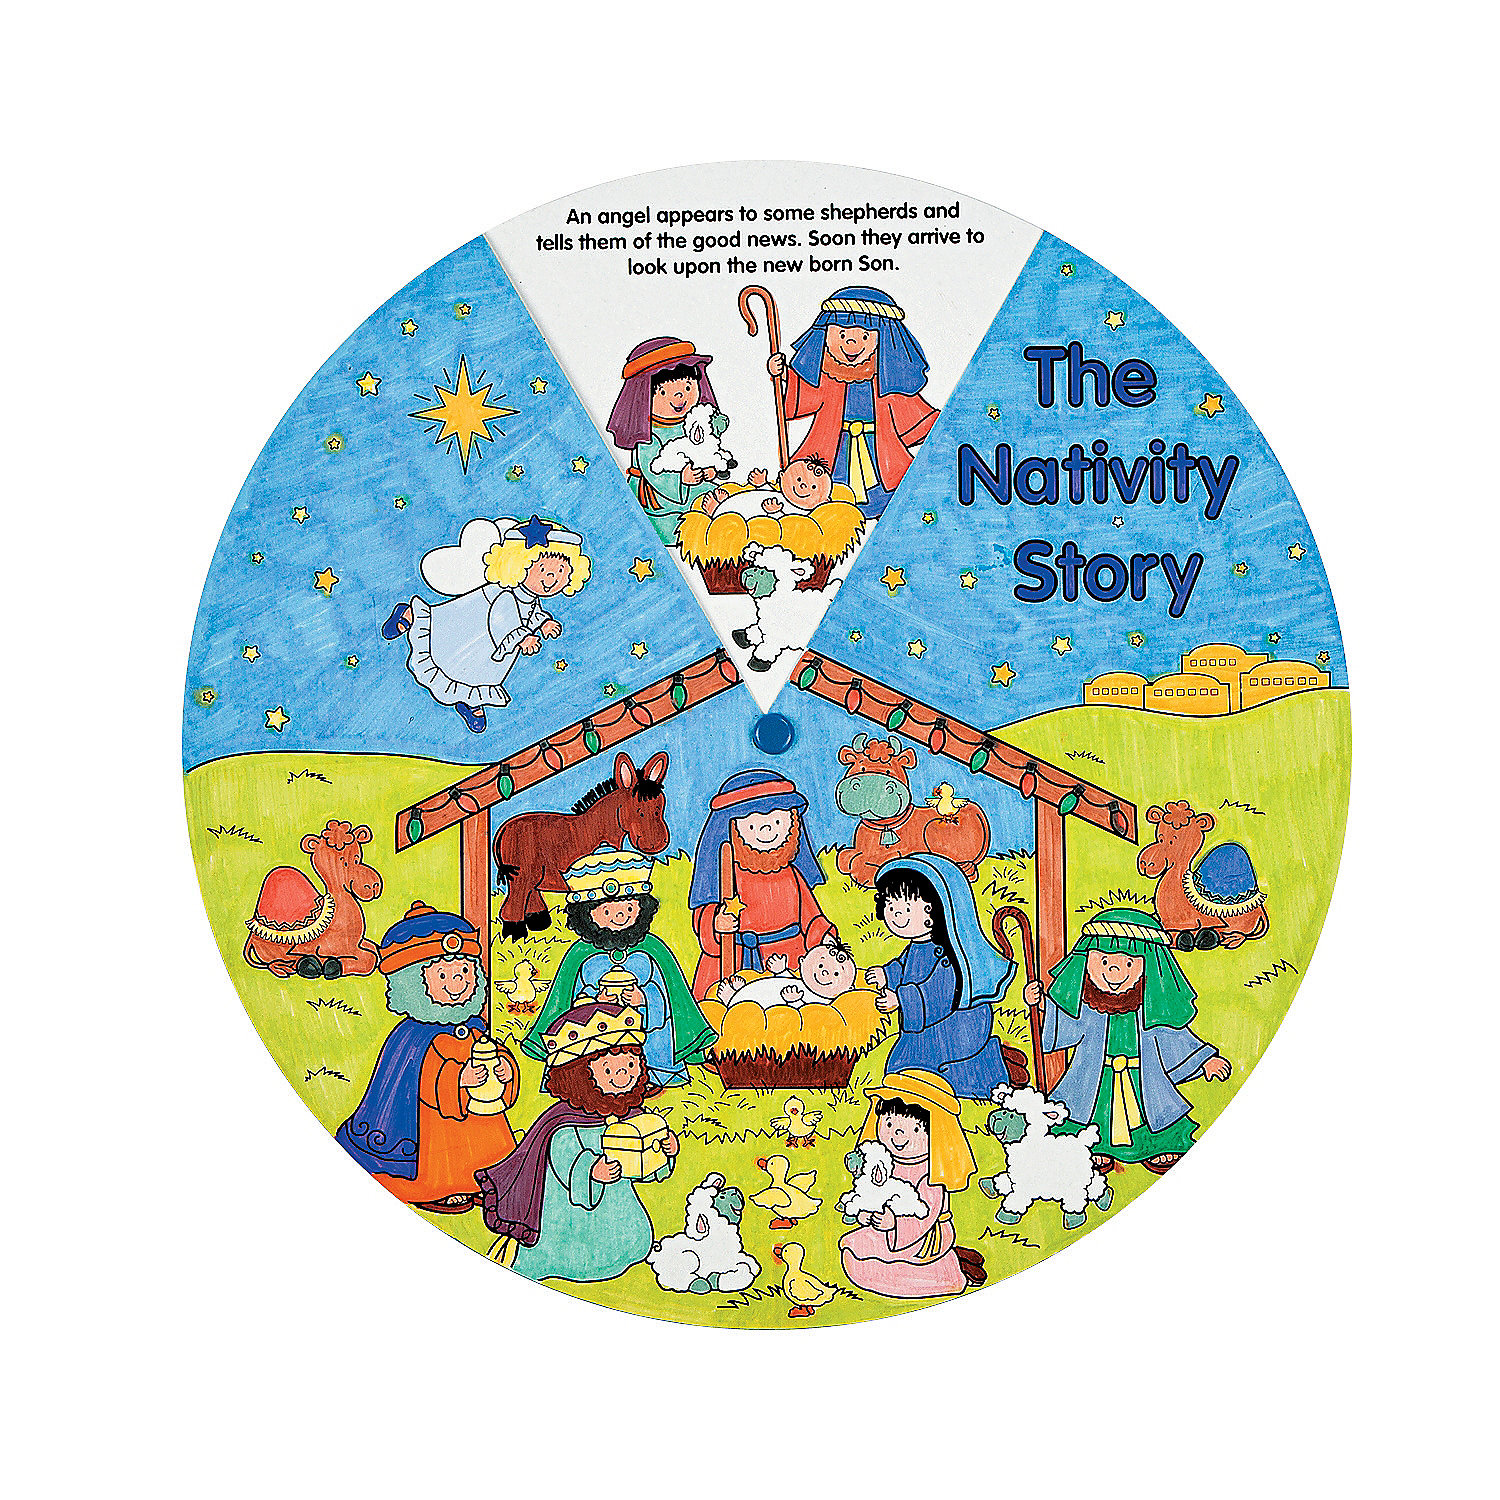 Sunday School Christmas Party Games: Color Your Own Nativity Wheels